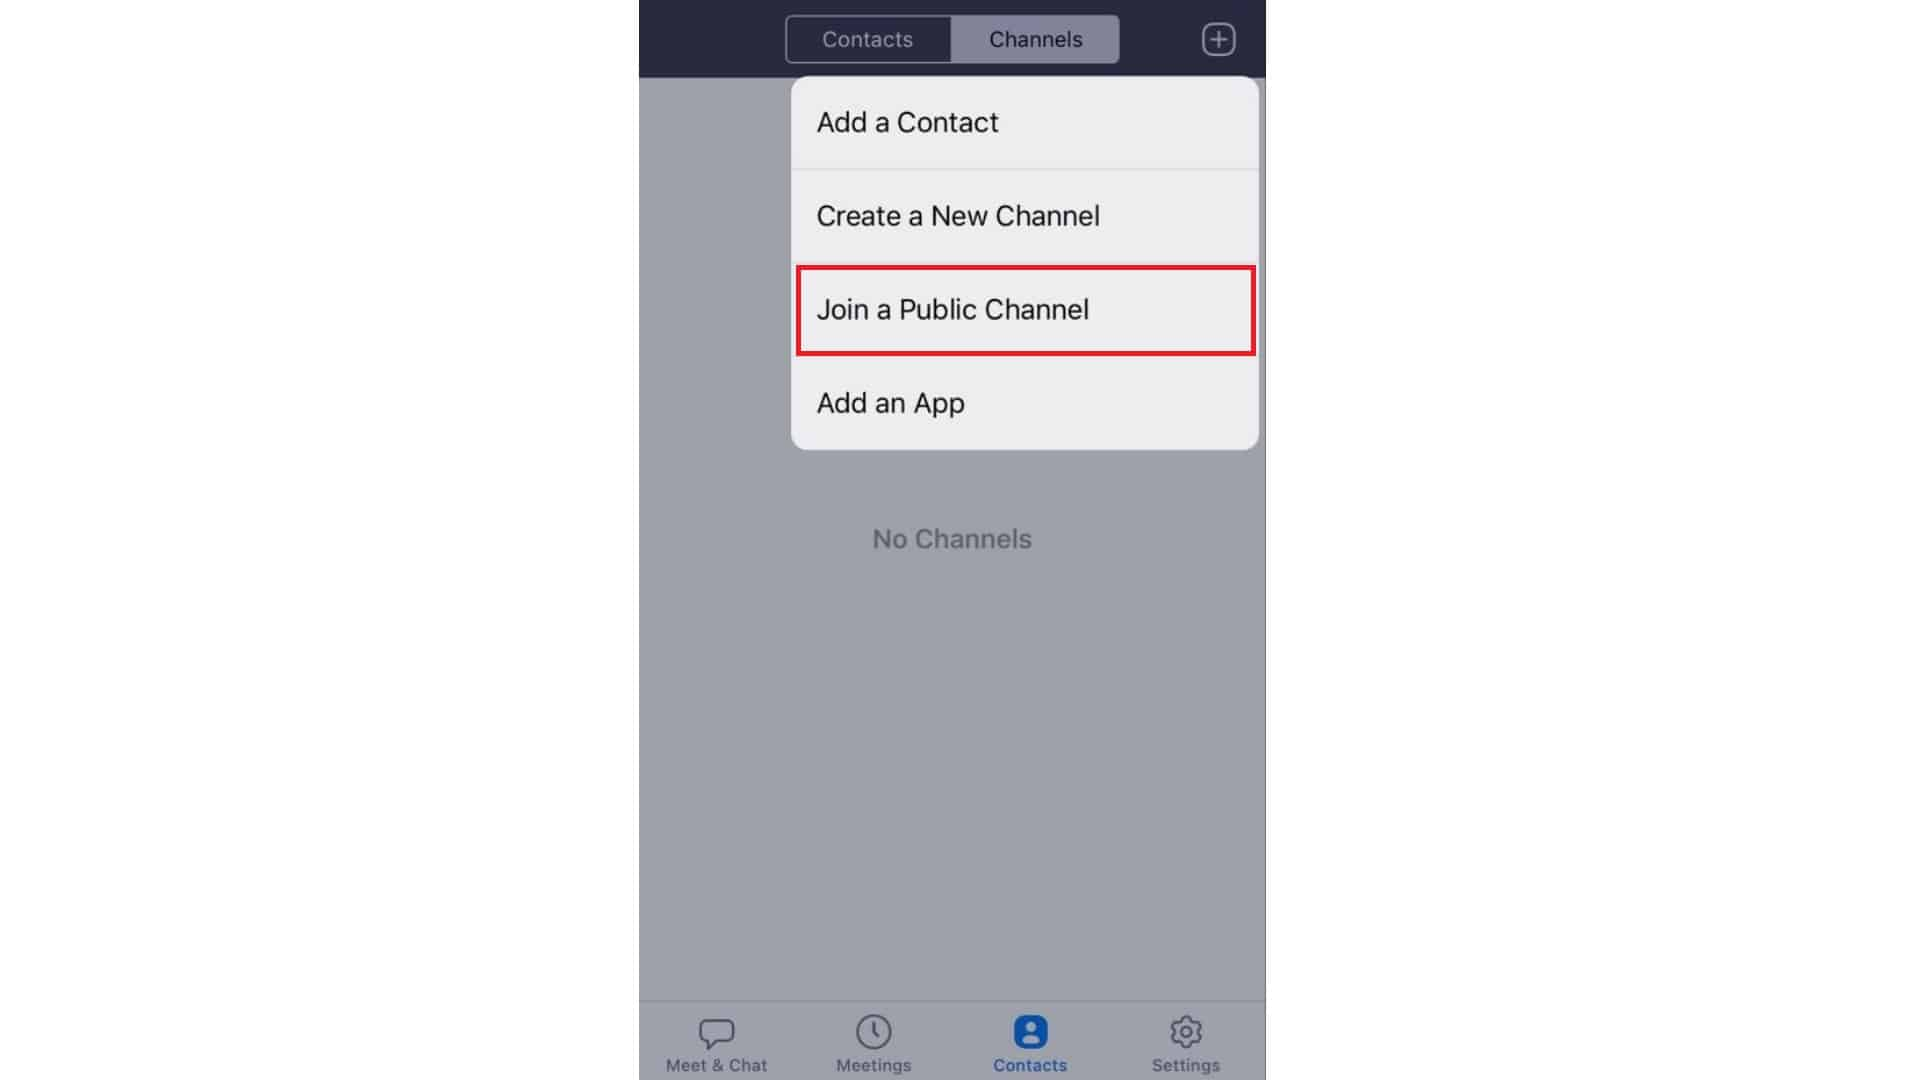 How-to-Join a-Public-Channel-on-Zoom-for-iOS-2020-guide